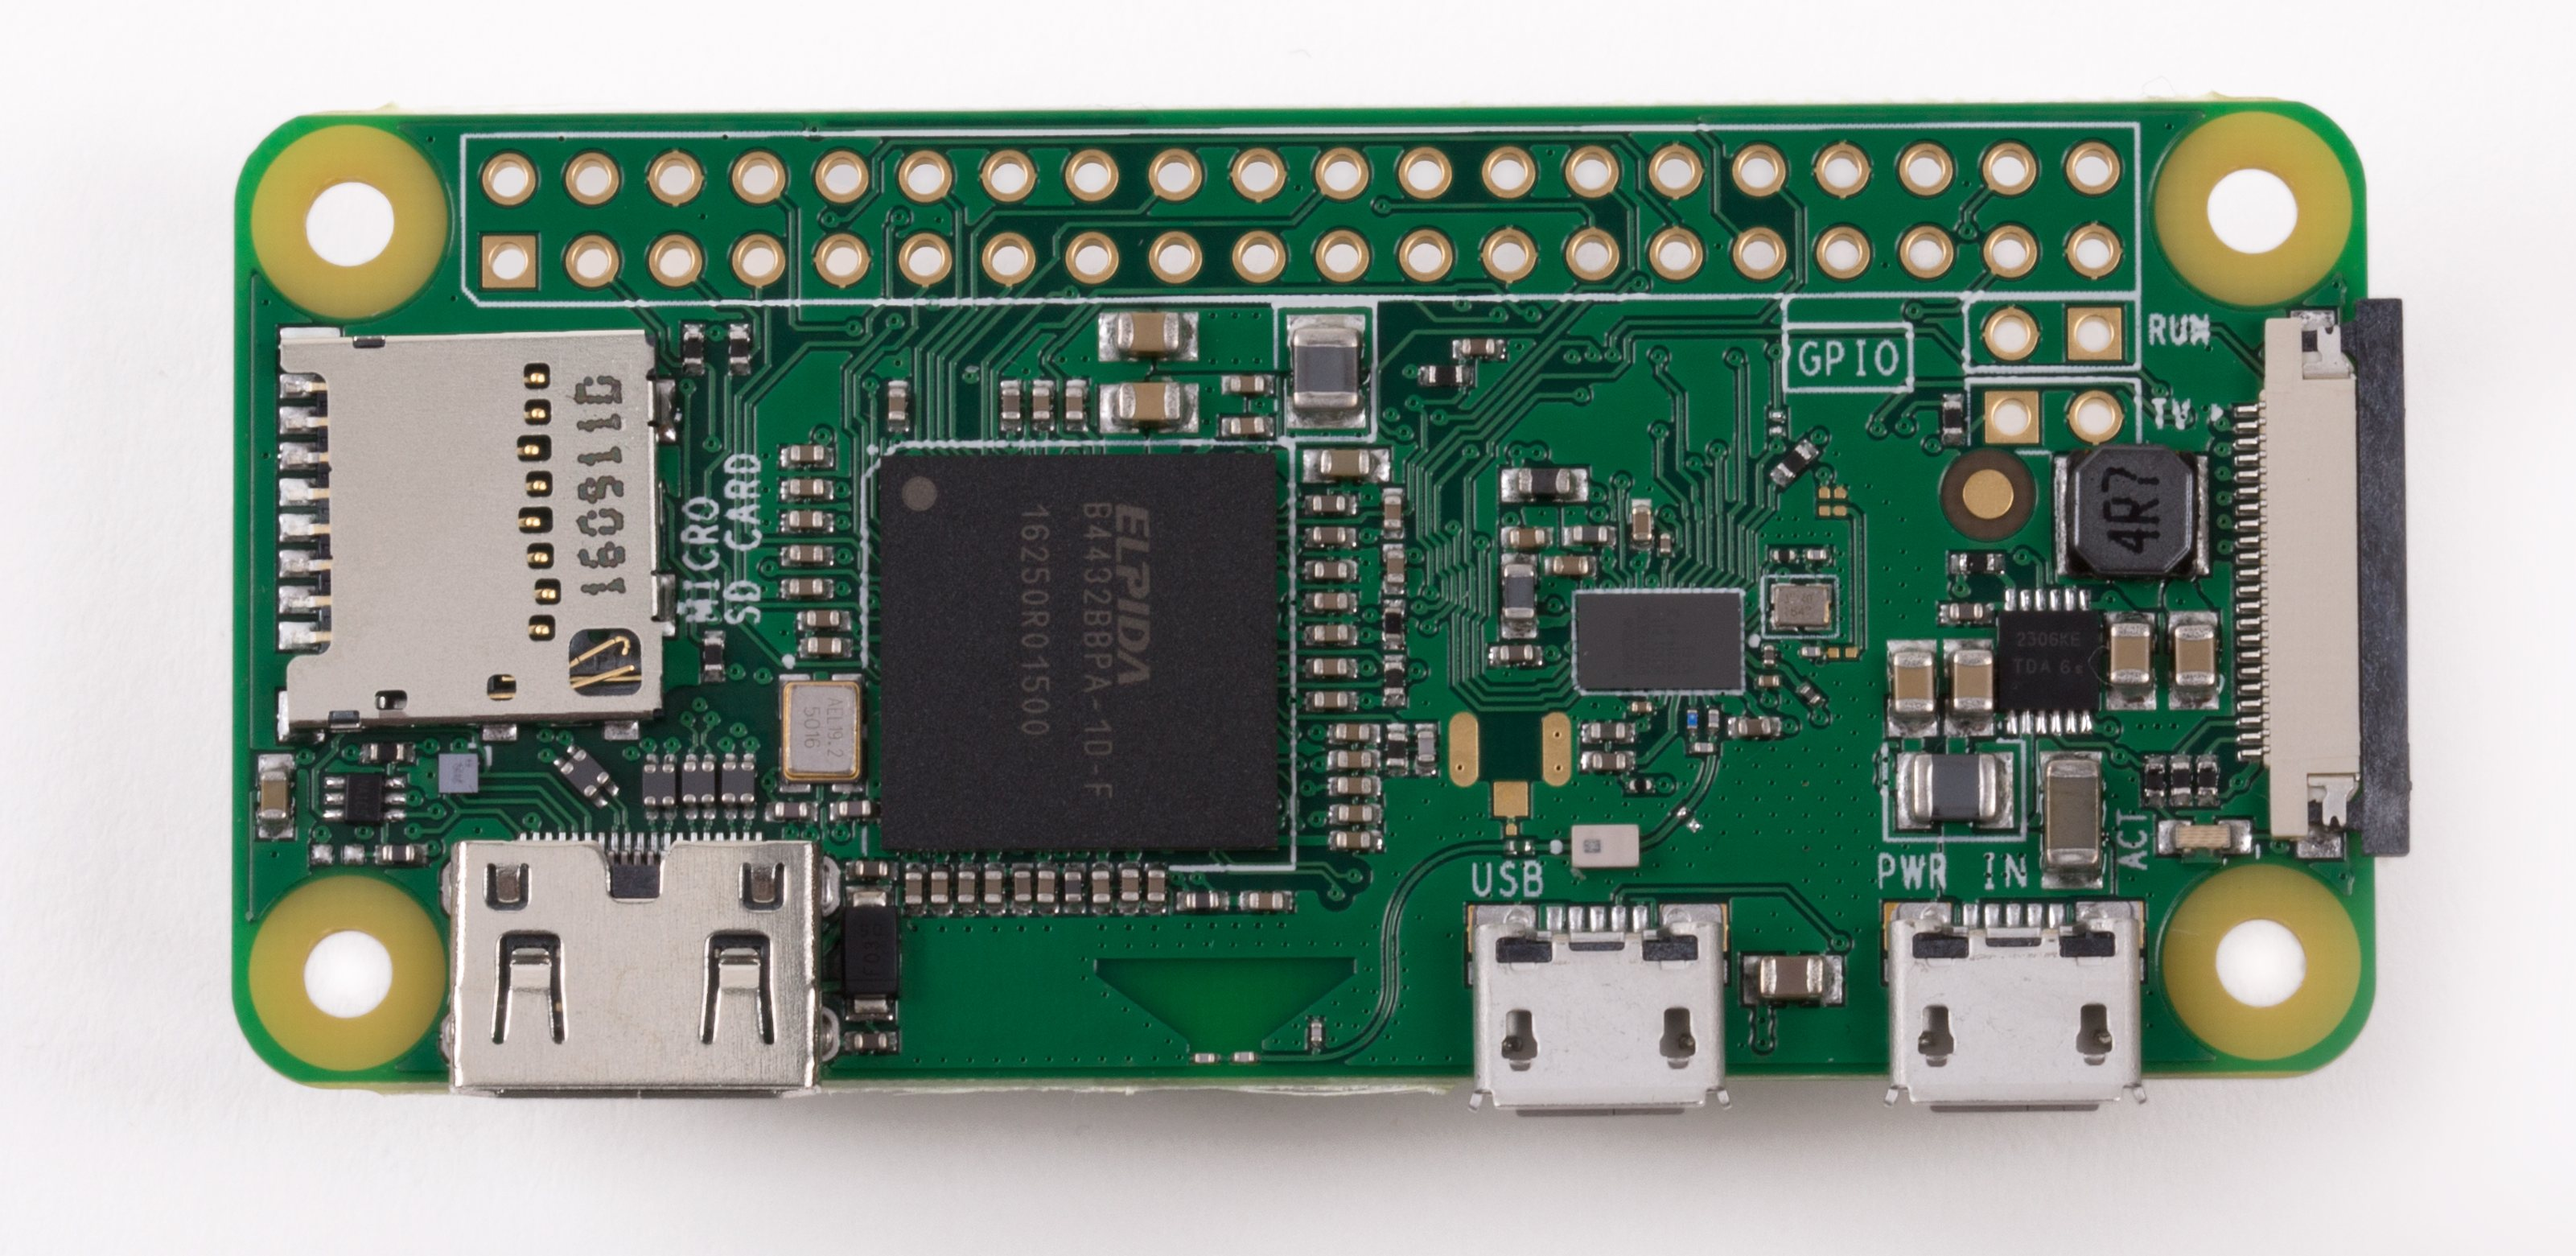 Wireless wonder: The new Pi Zero W antenna design - The